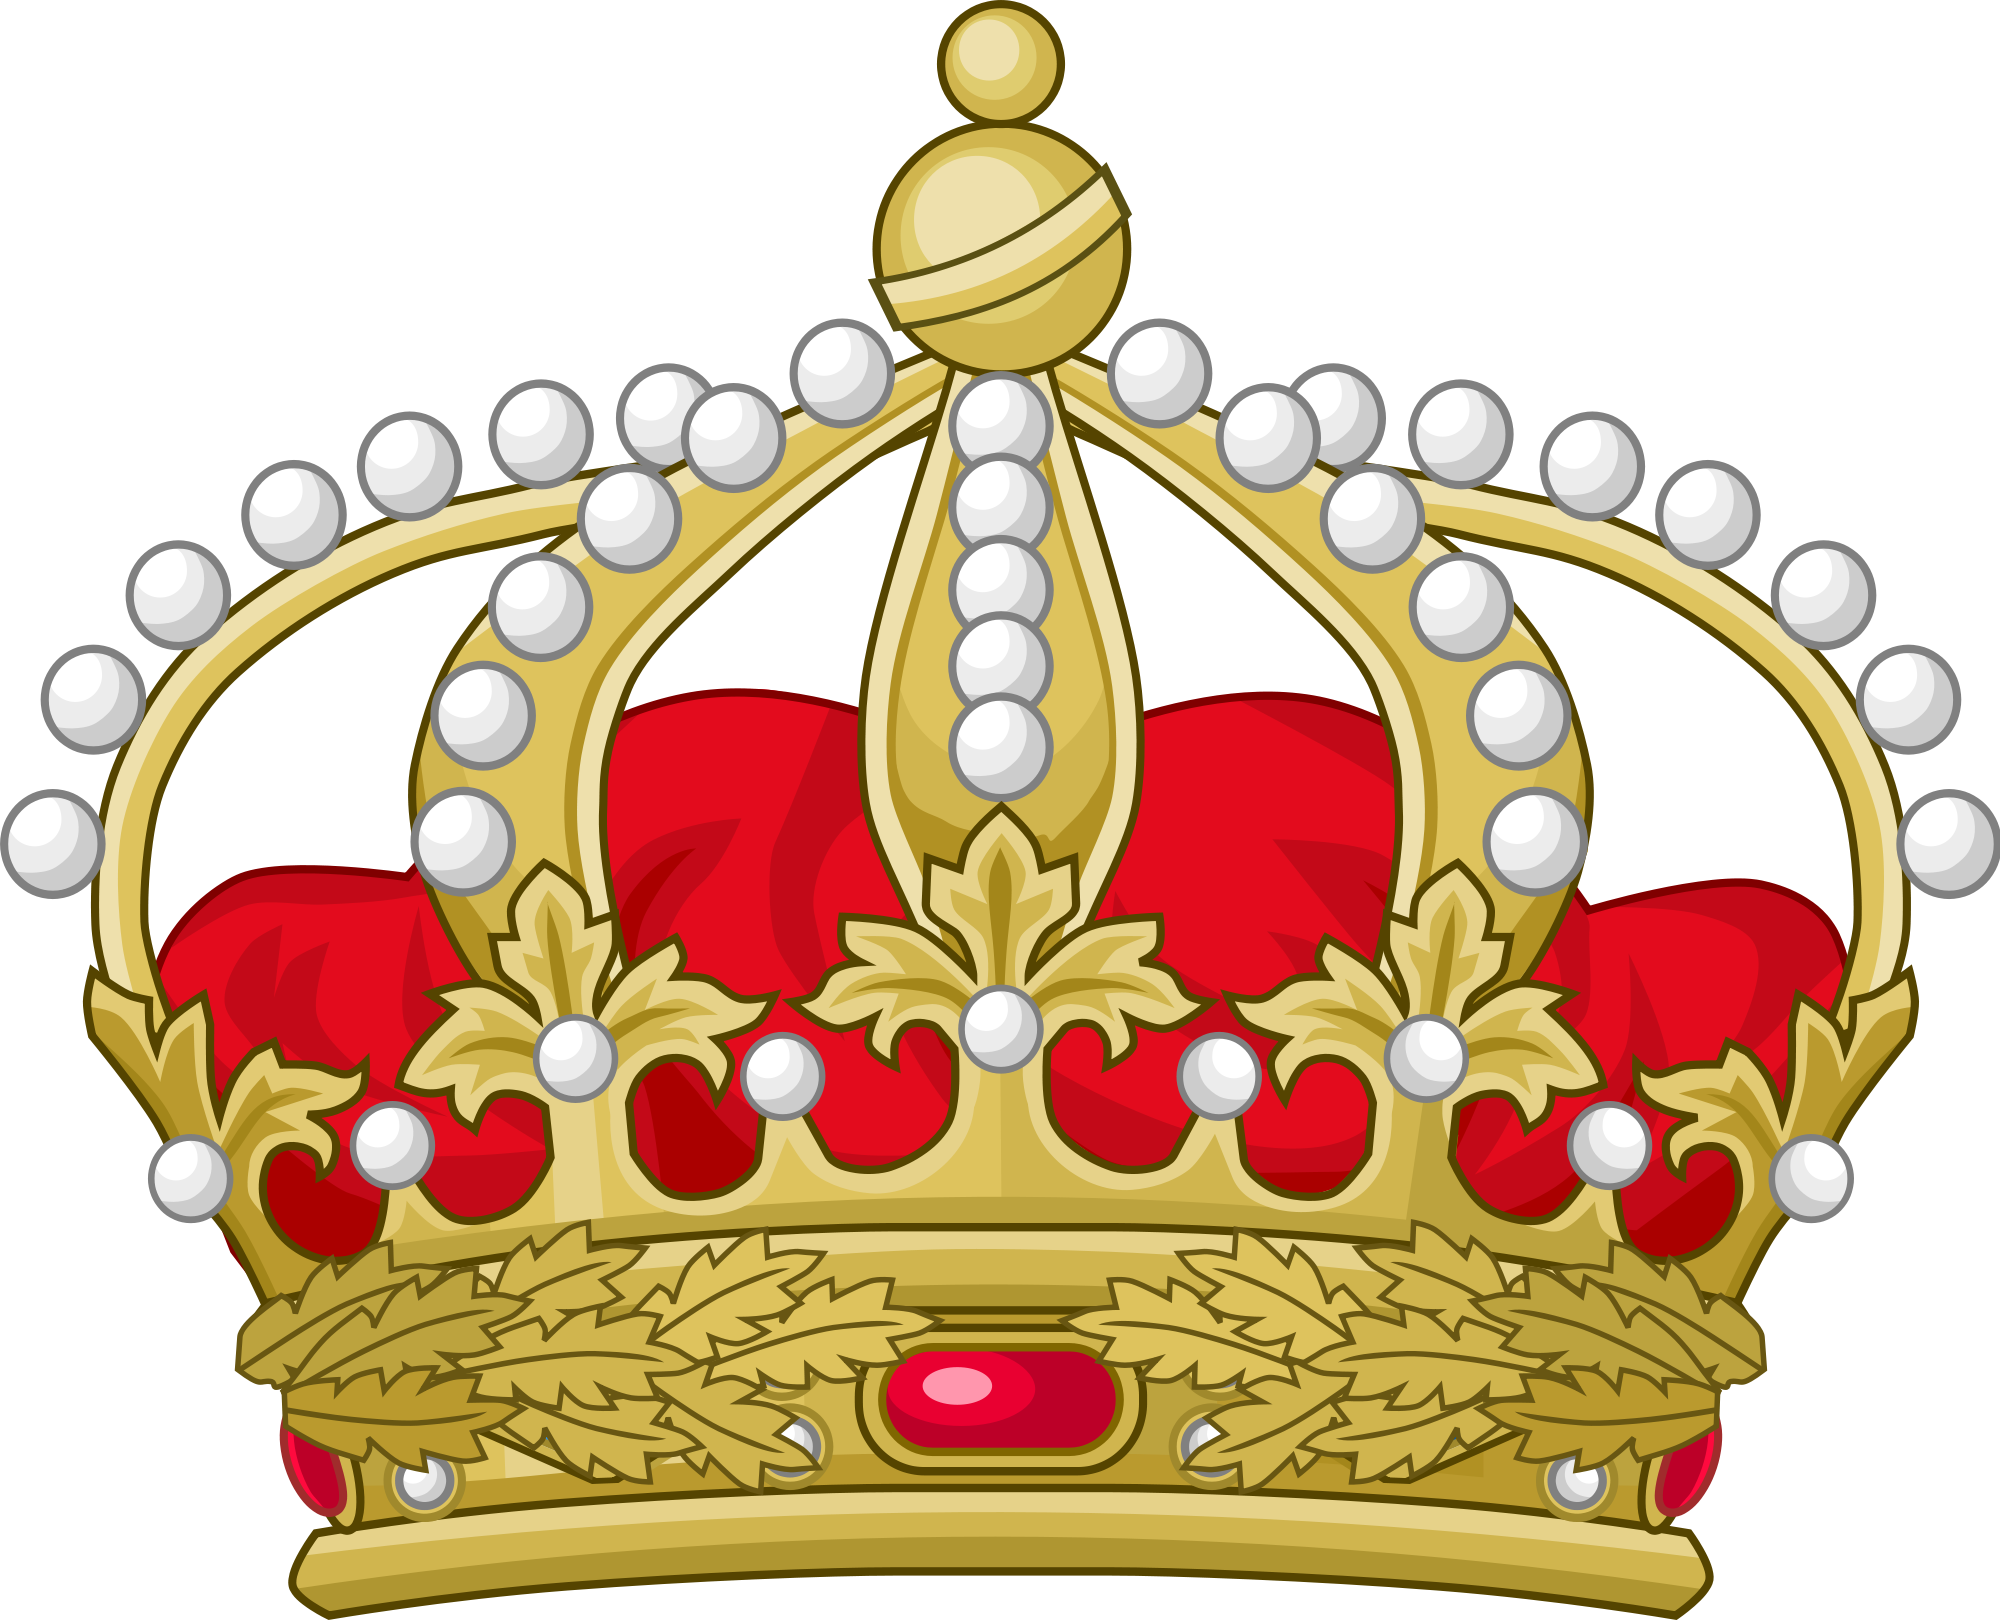 Crown clipart british vector library download File:Crown of Orléans.svg - Wikimedia Commons vector library download